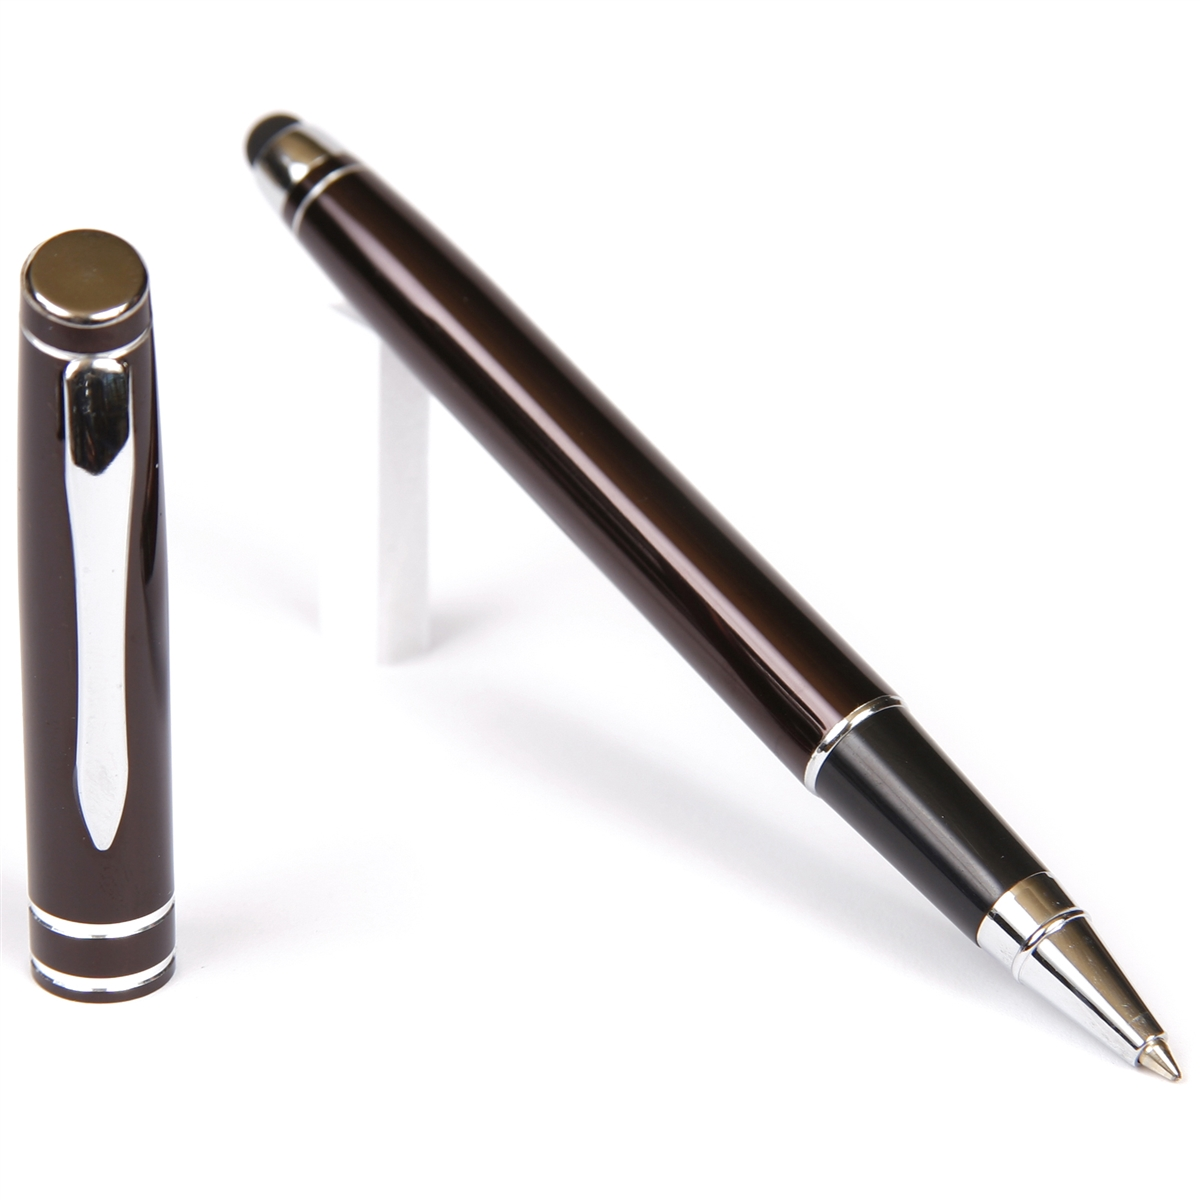 D206 - Gun Metal Rollerball Pen with Stylus